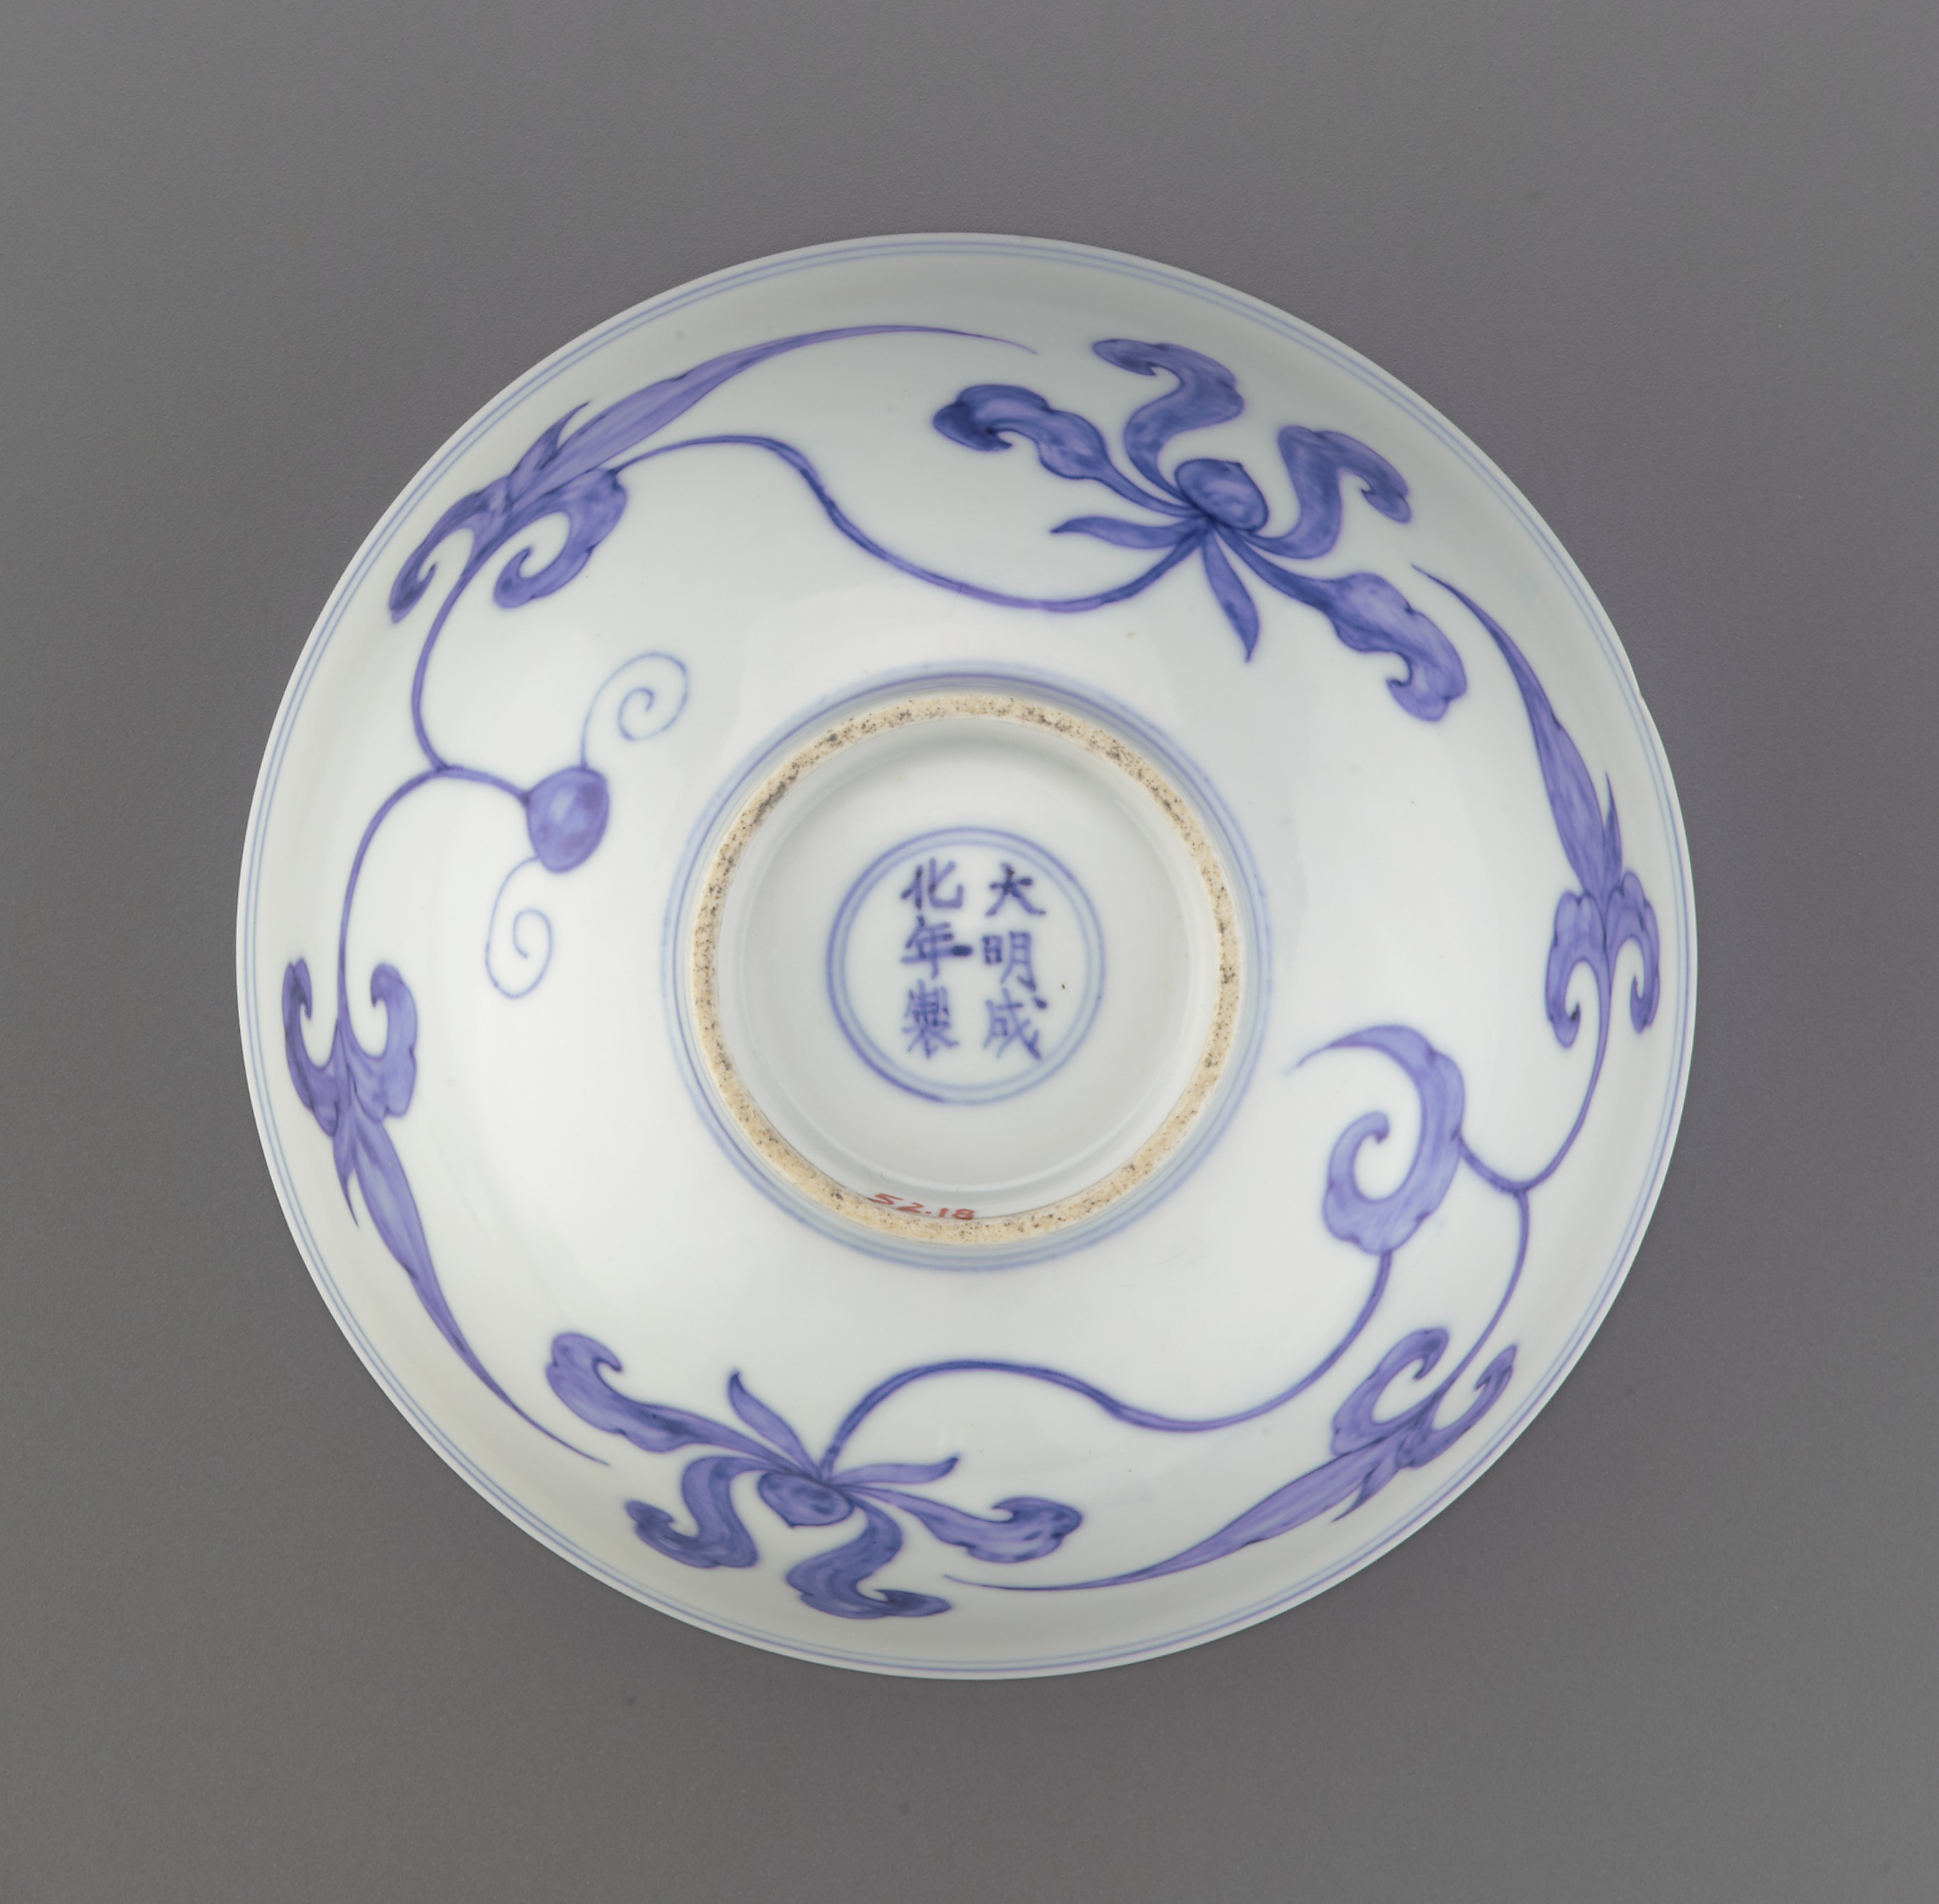 Chenghua mark and period alainruong blue and white lotus palace bowl chenghua mark and period 1465 1487 ming dynasty 1368 1644 jingdezhen jiangxi province reviewsmspy